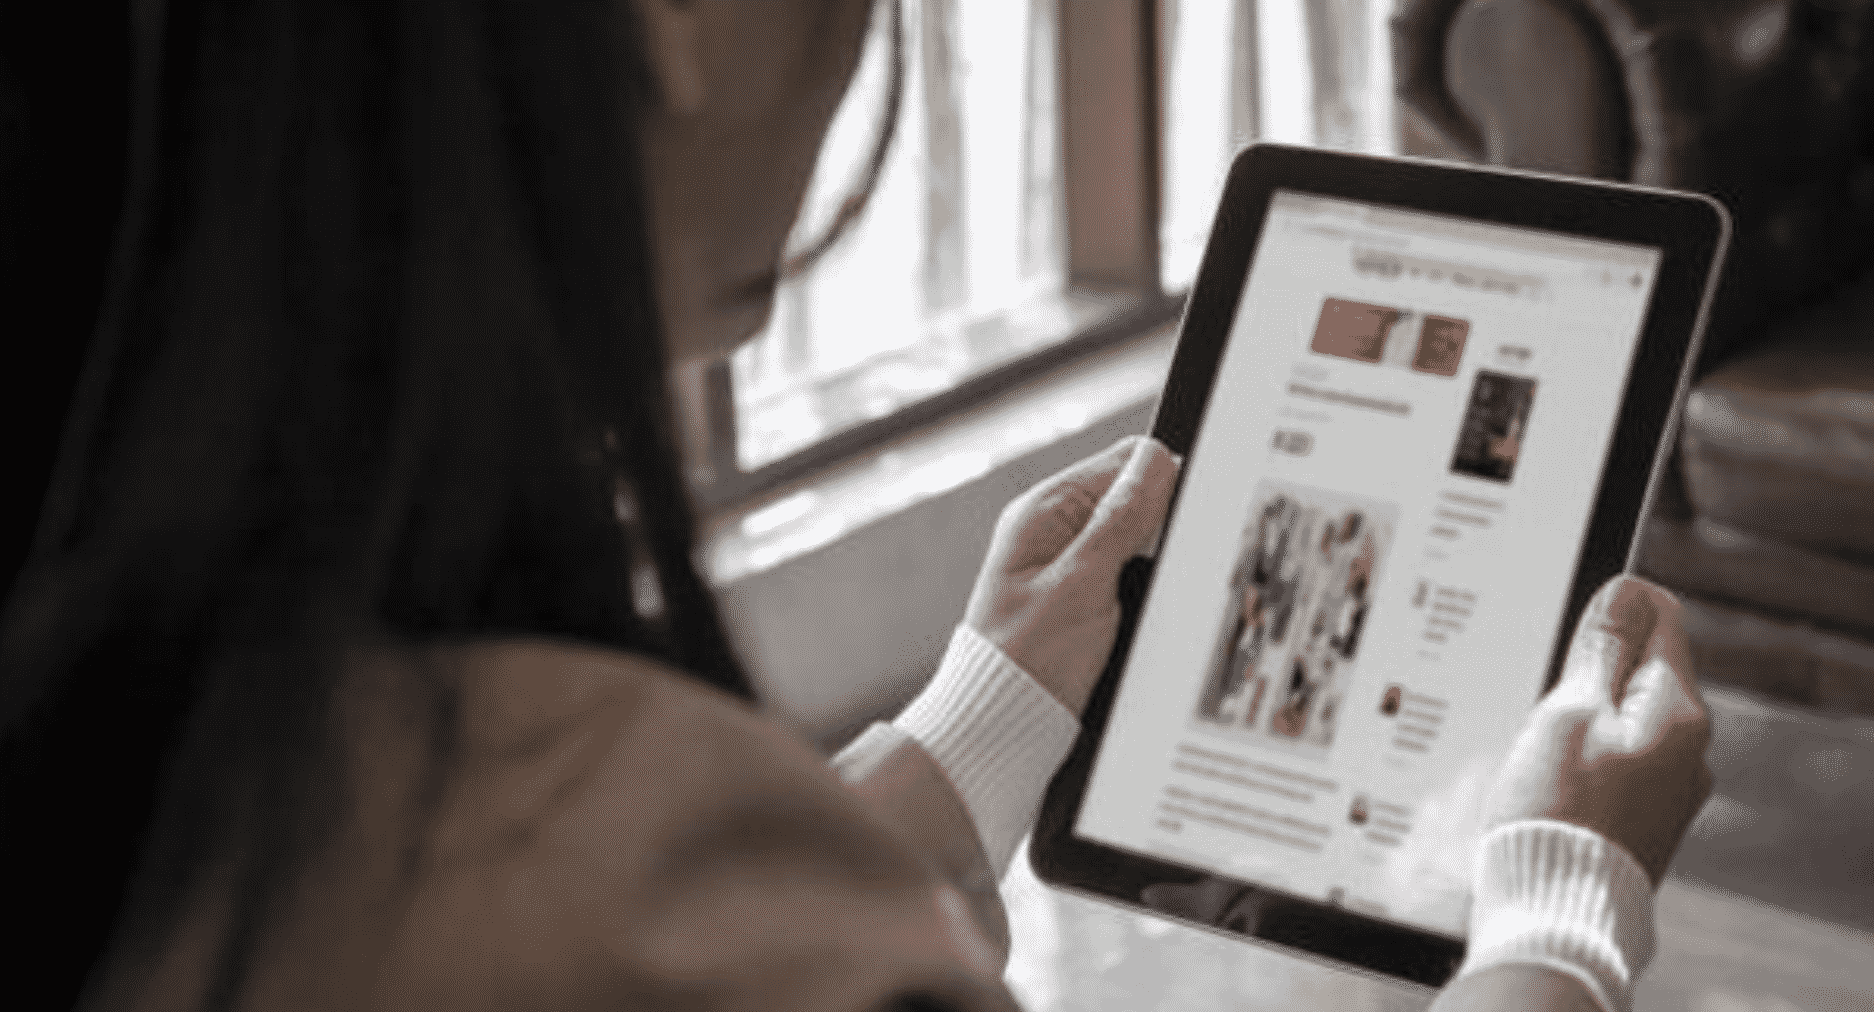 The iPad is a part of a Chattanooga newspaper publisher's transition from print to digital distribution